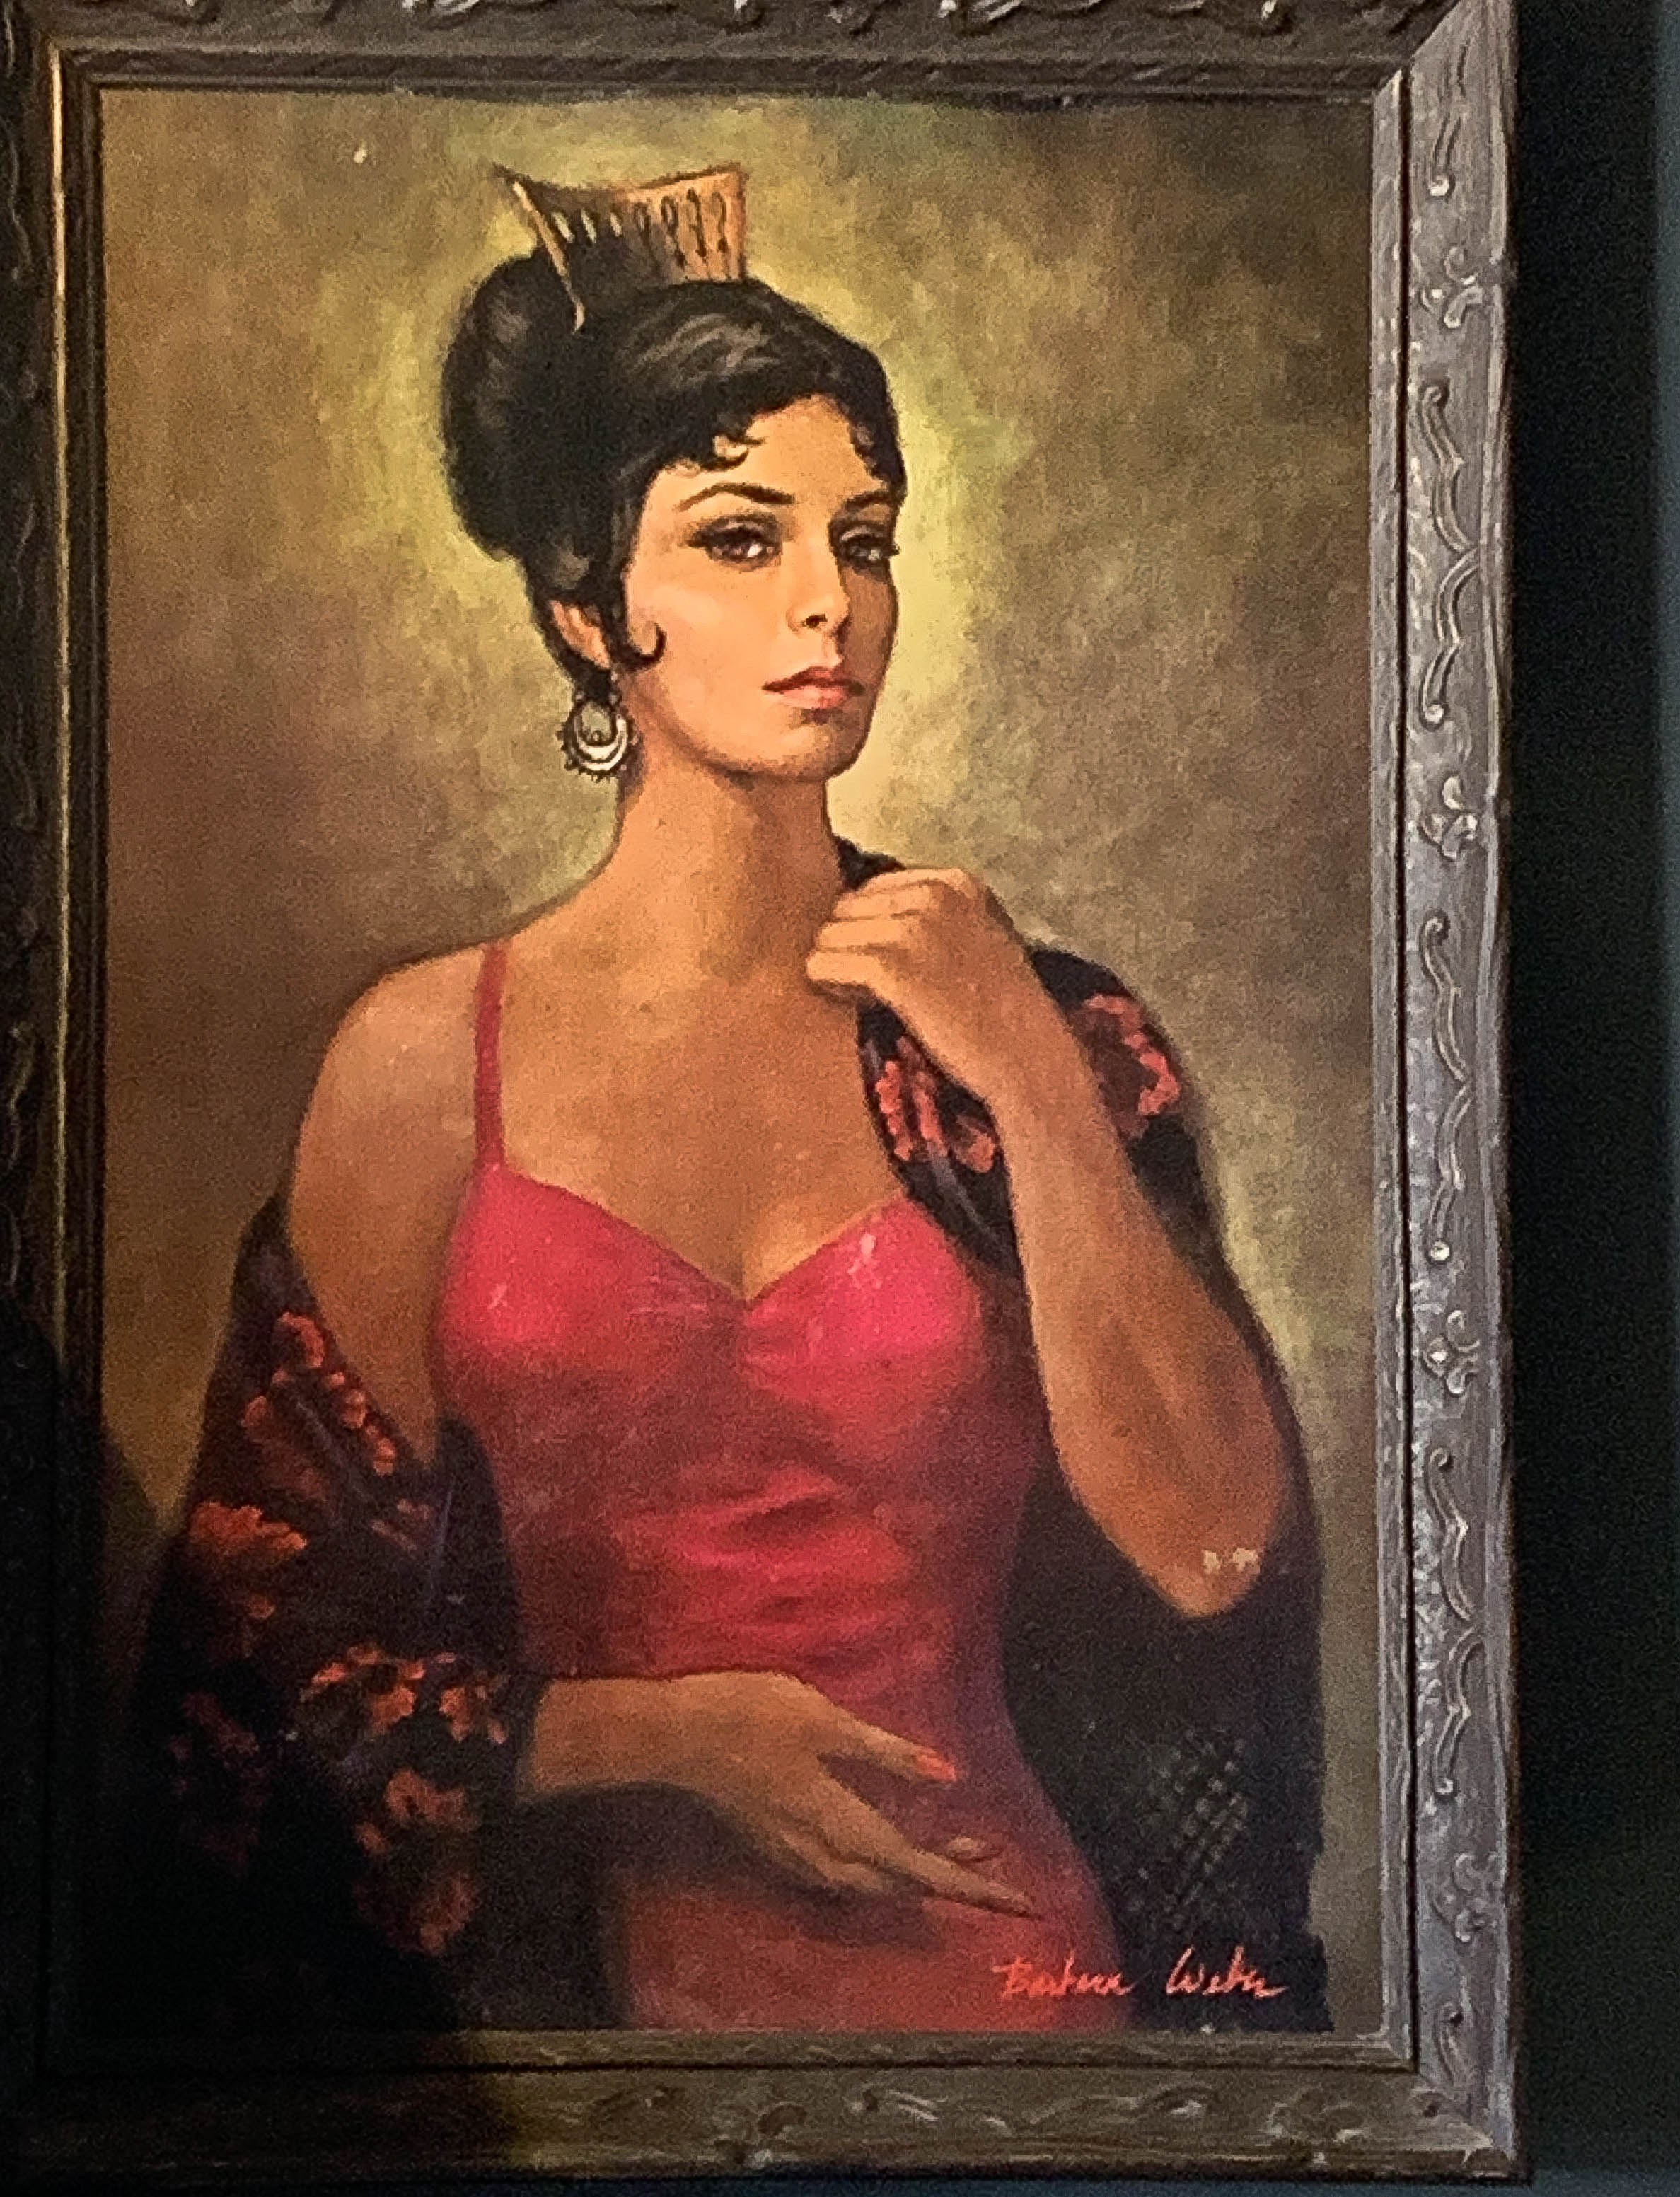 The lady of mystery hangs in Comet Cafe. No one seems to know who she is.